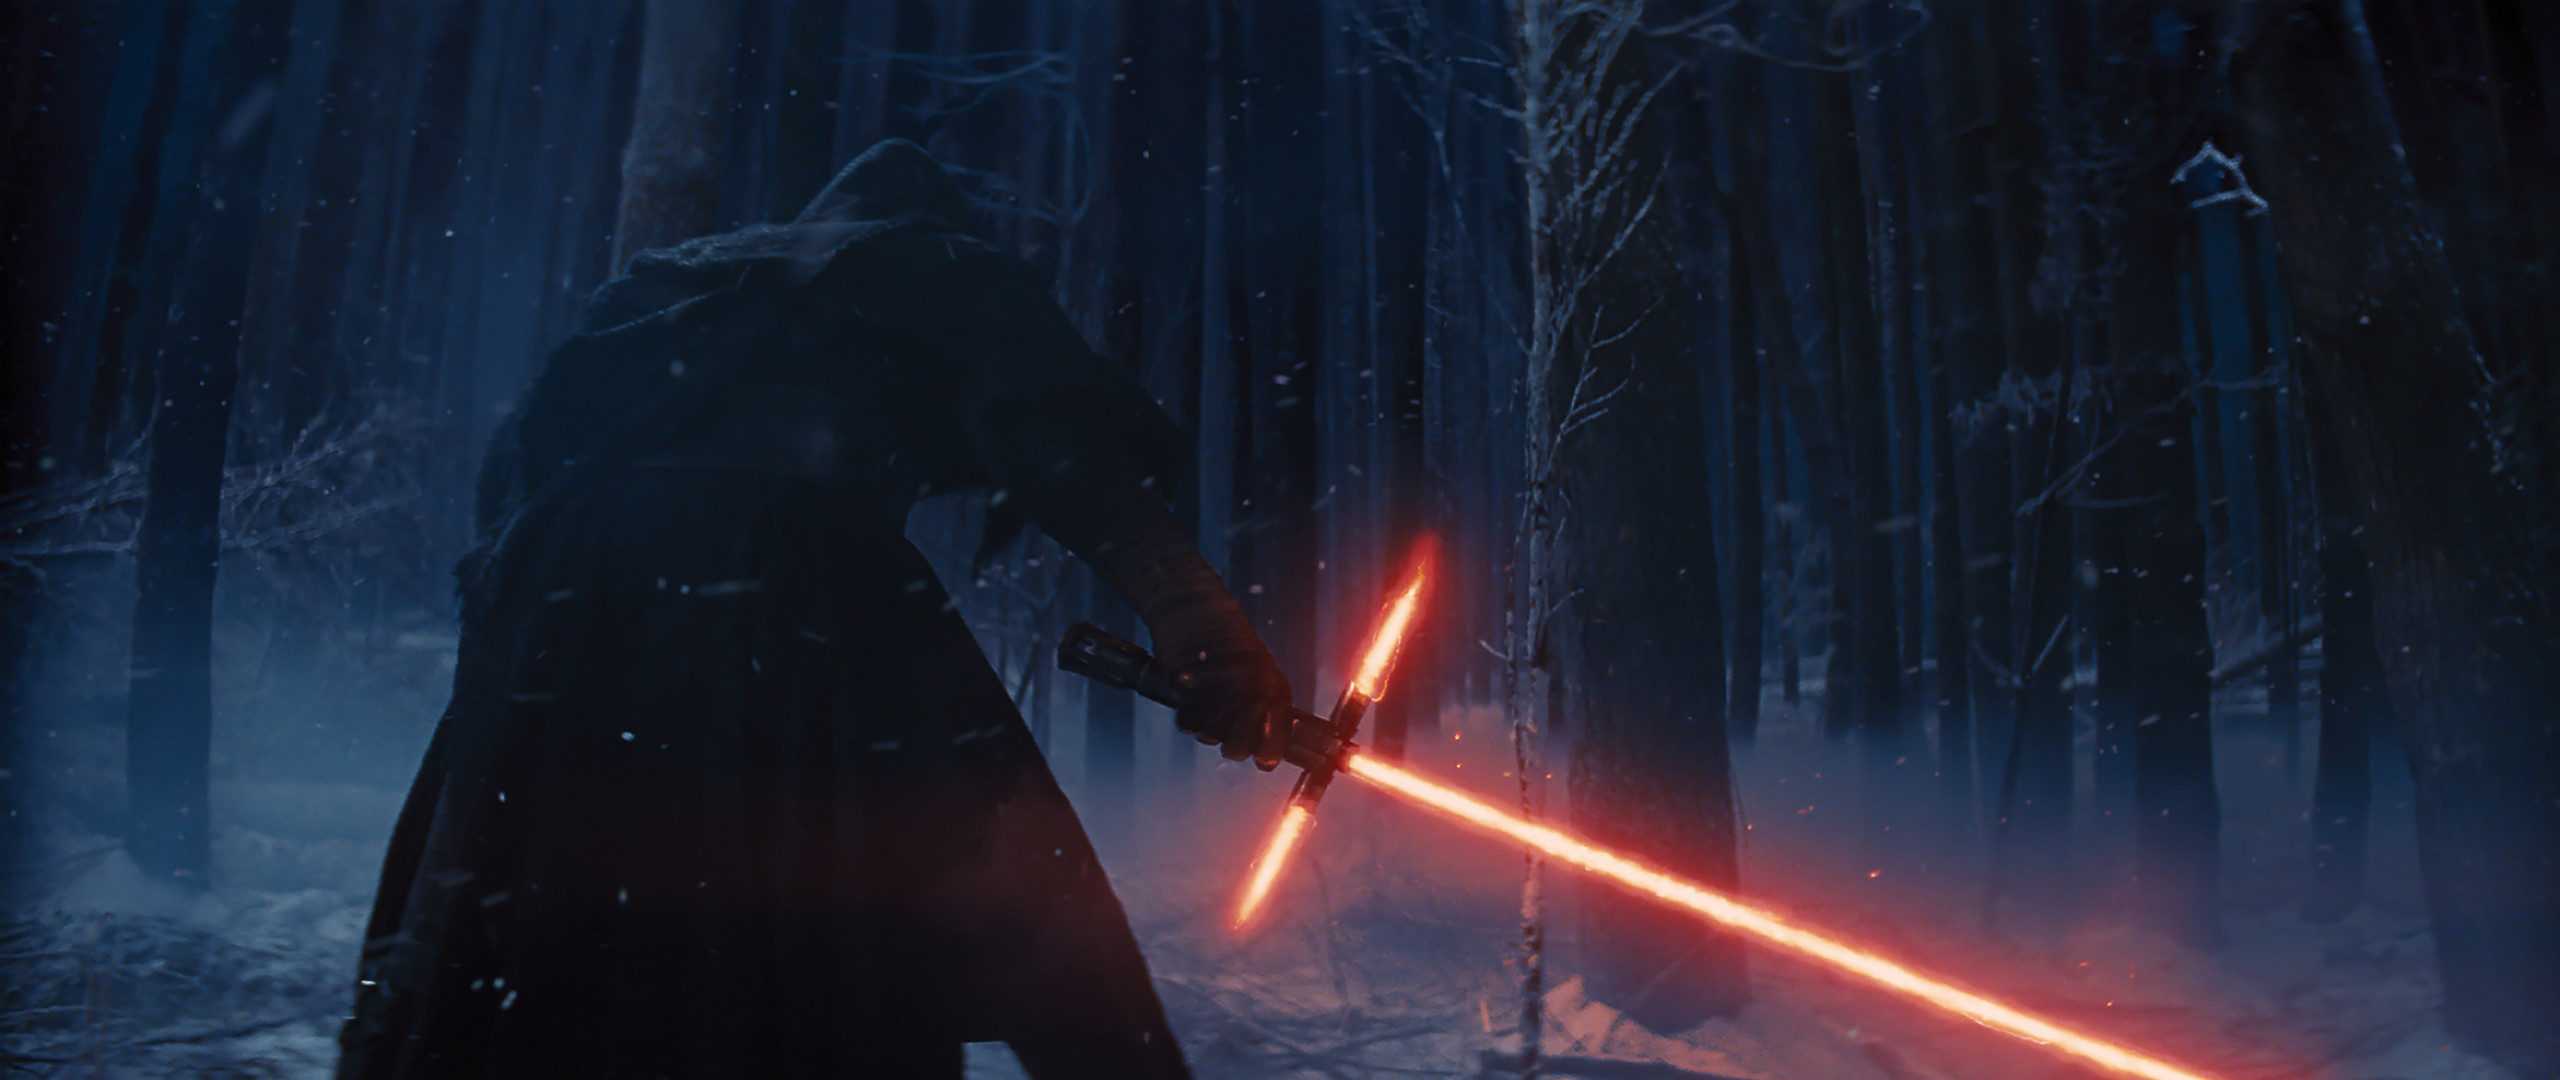 2560x1080 General  Star Wars: The Force Awakens Kylo Ren